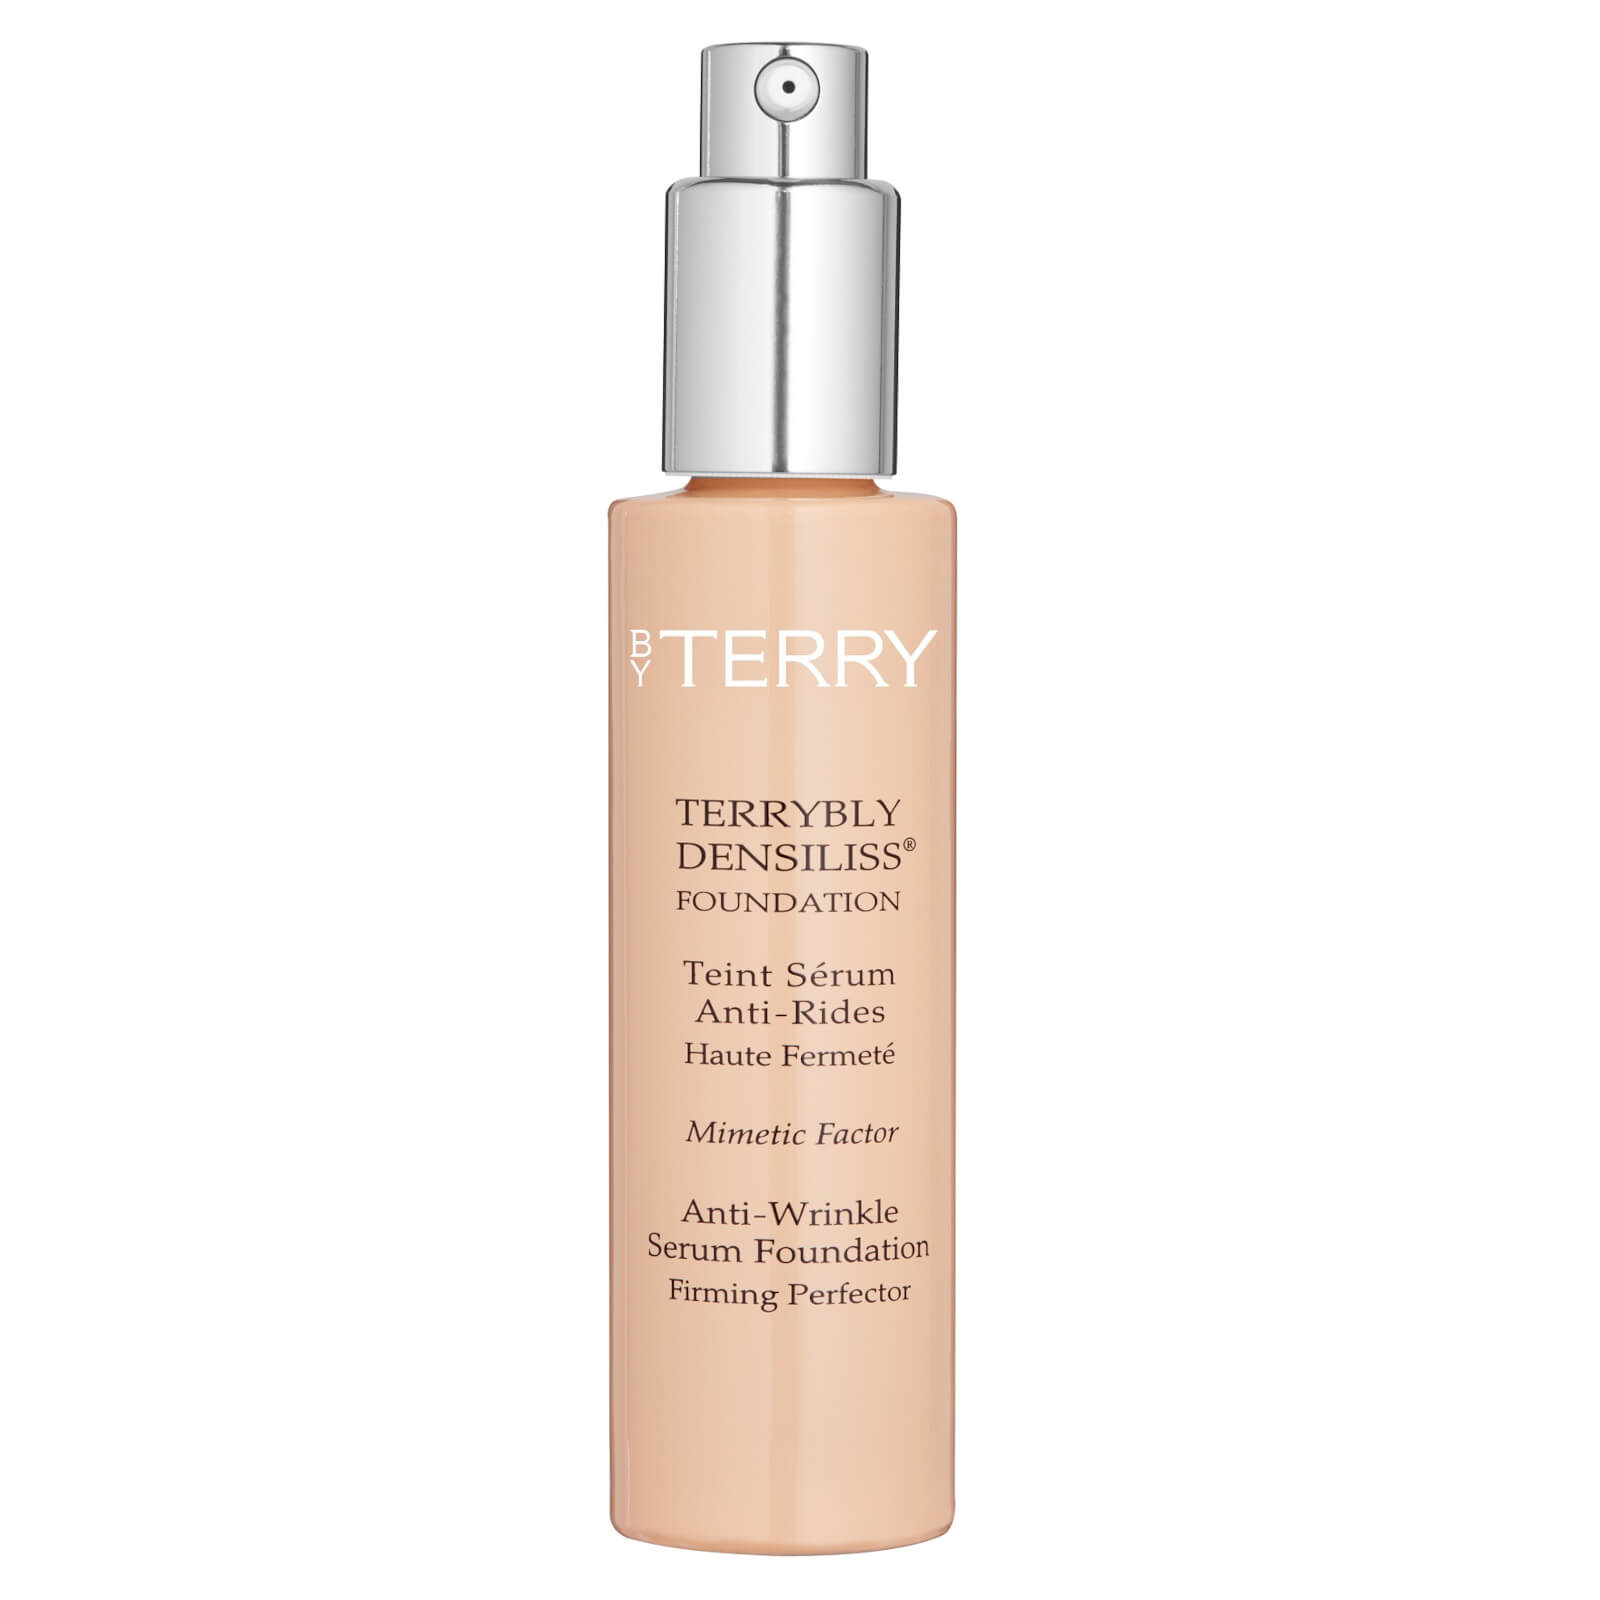 By Terry Terrybly Densiliss Foundation 30ml (Various Shades) - 4. Natural Beige